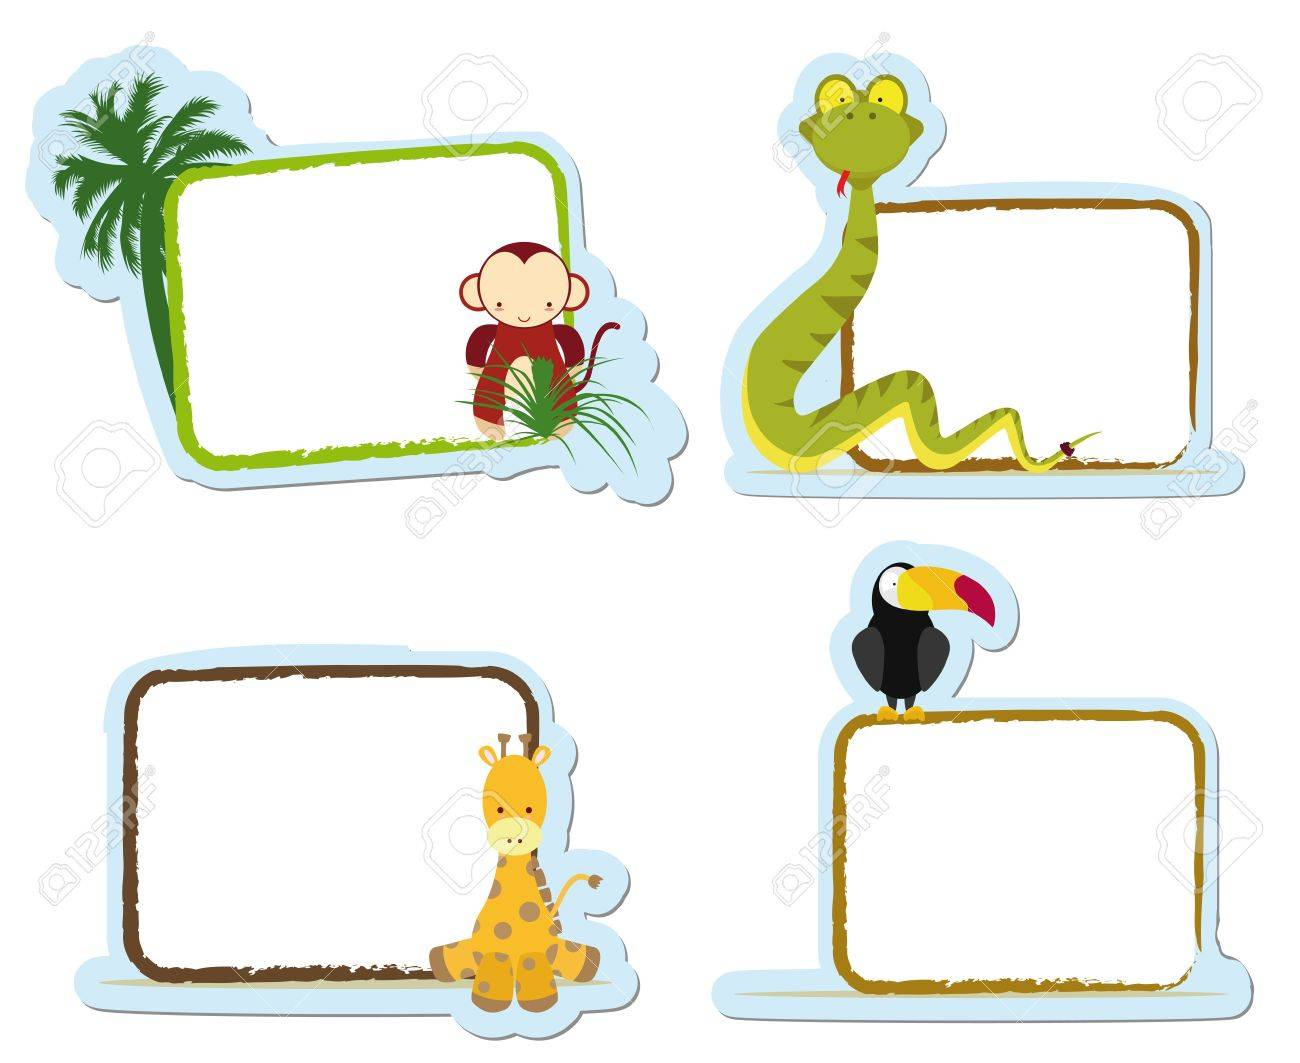 four animal stickers for school, monkey, snake, giraffe and toucan Stock Vector - 14575721